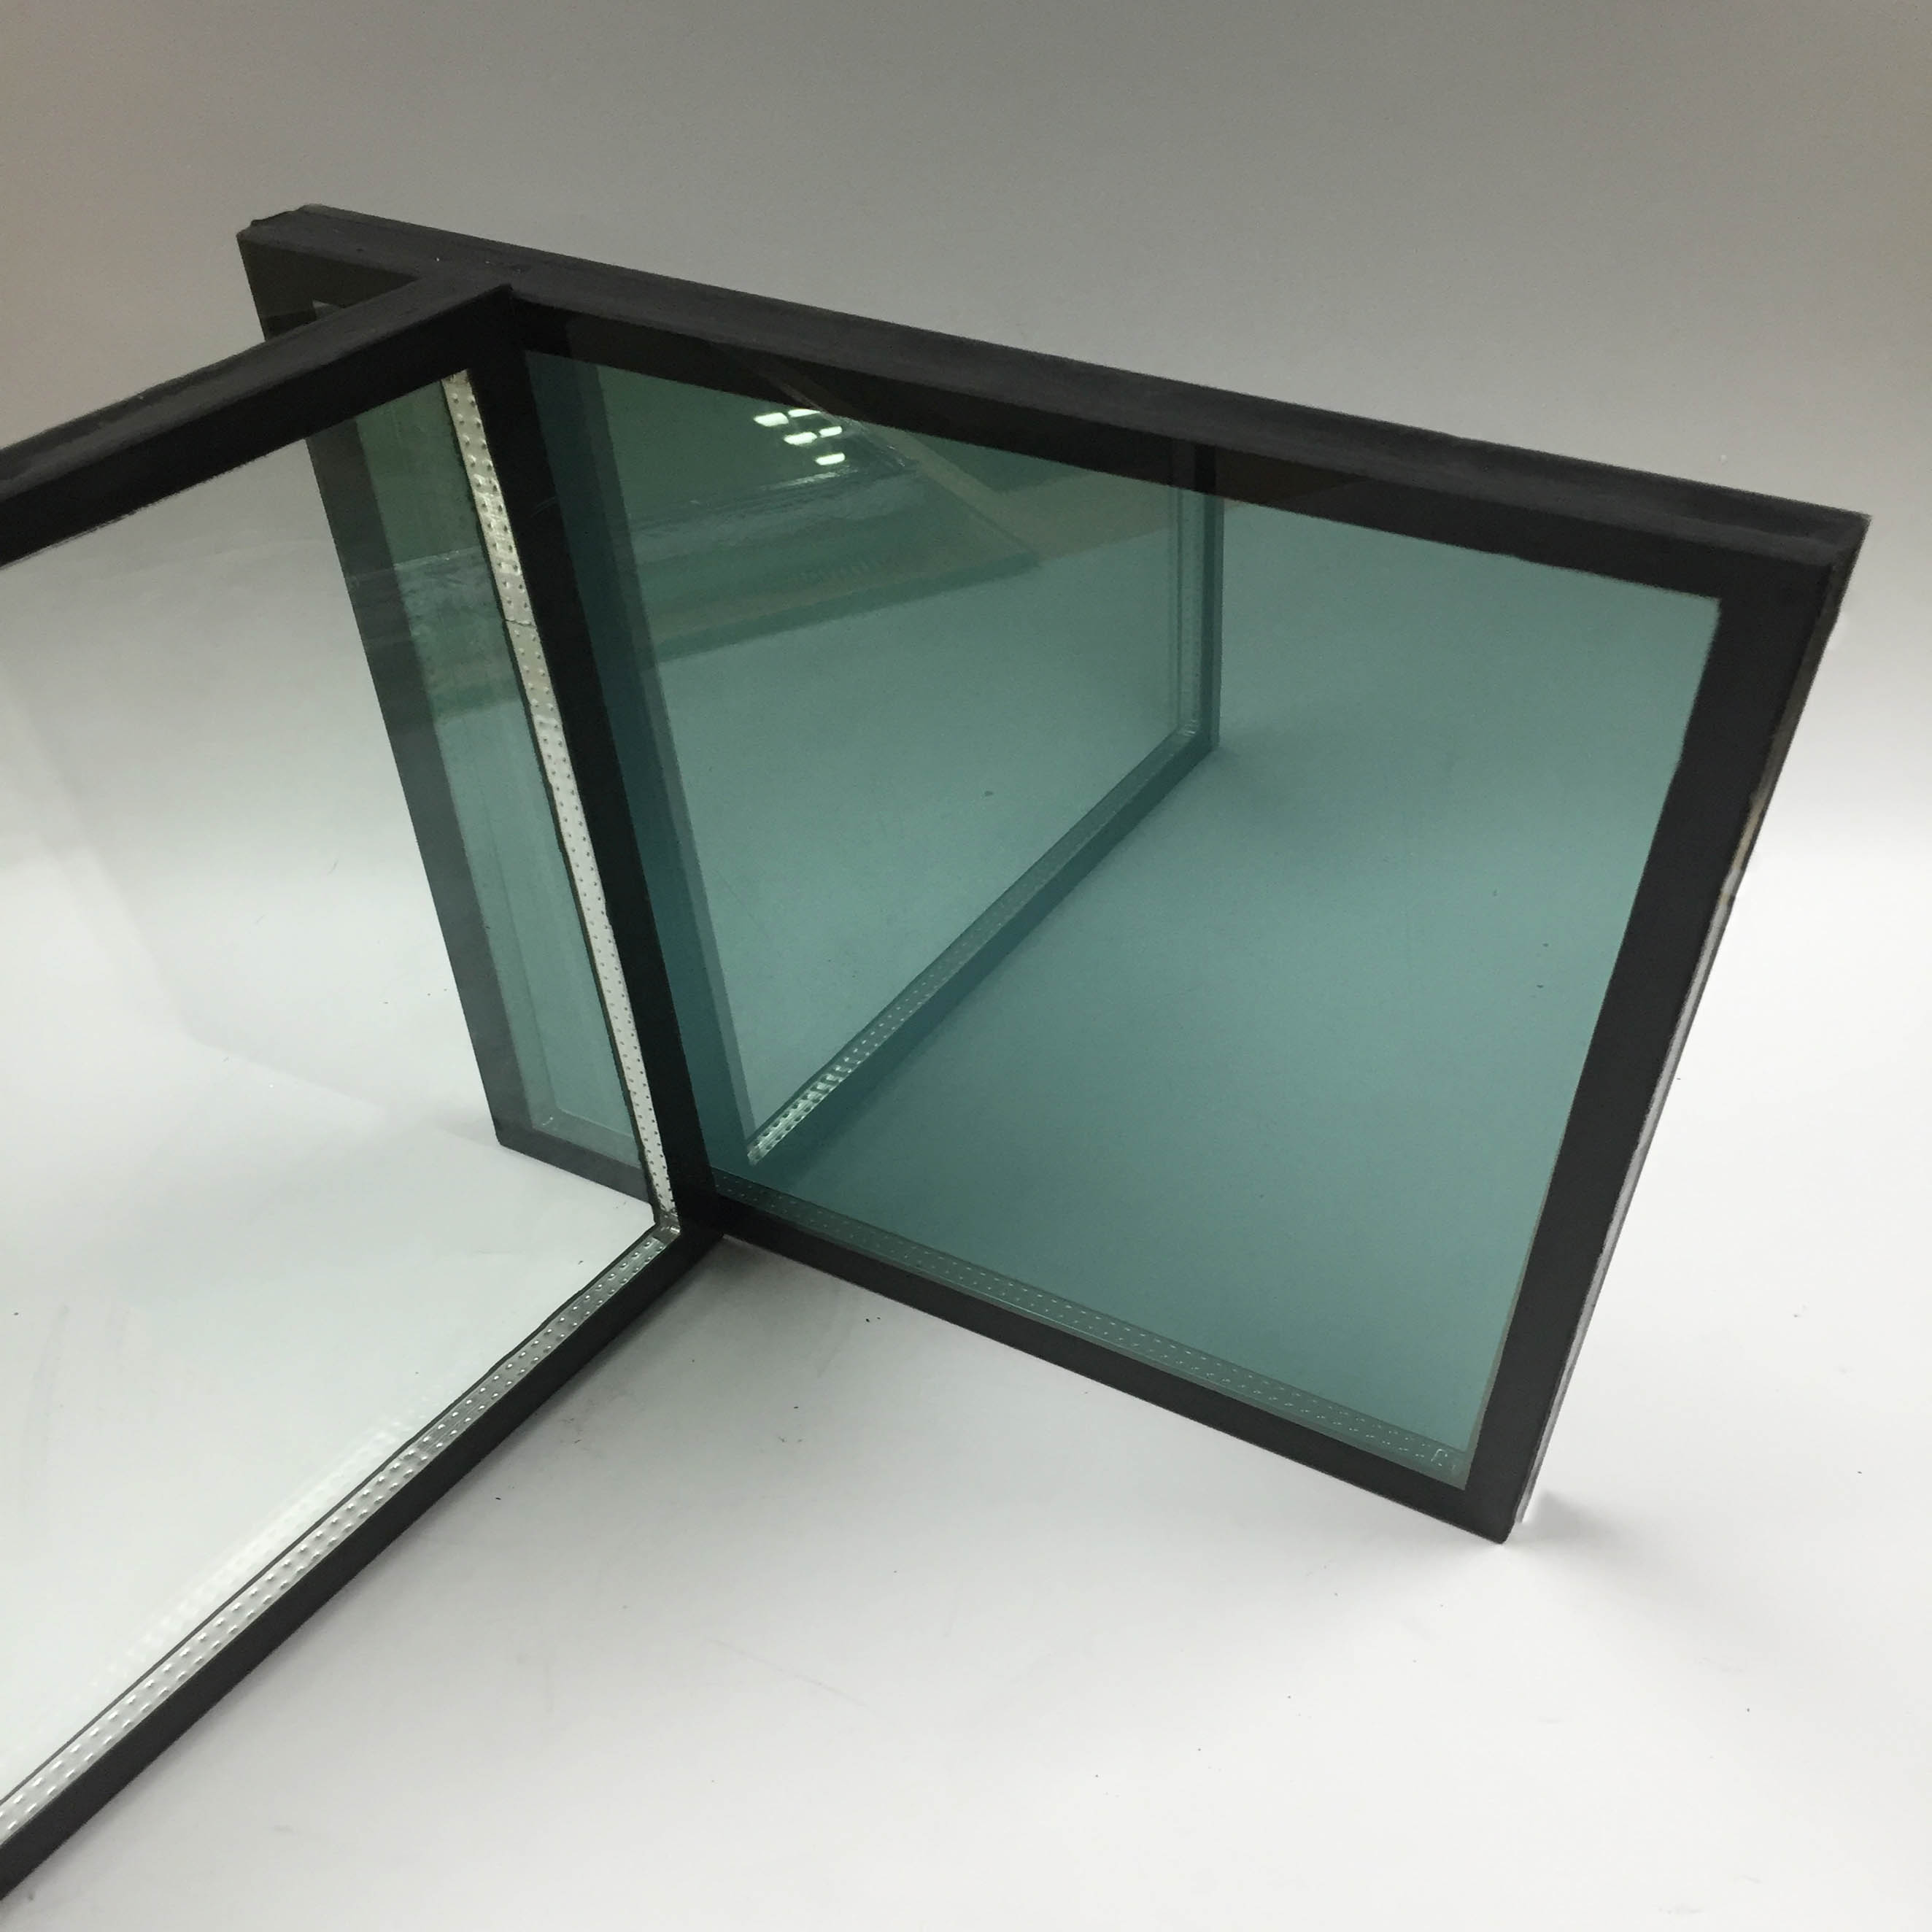 24mm low e insulated glass, 6mm+6mm green double glazing, 6mm+12mm air+6mm low e insulated glass, 24mm double glazed glass